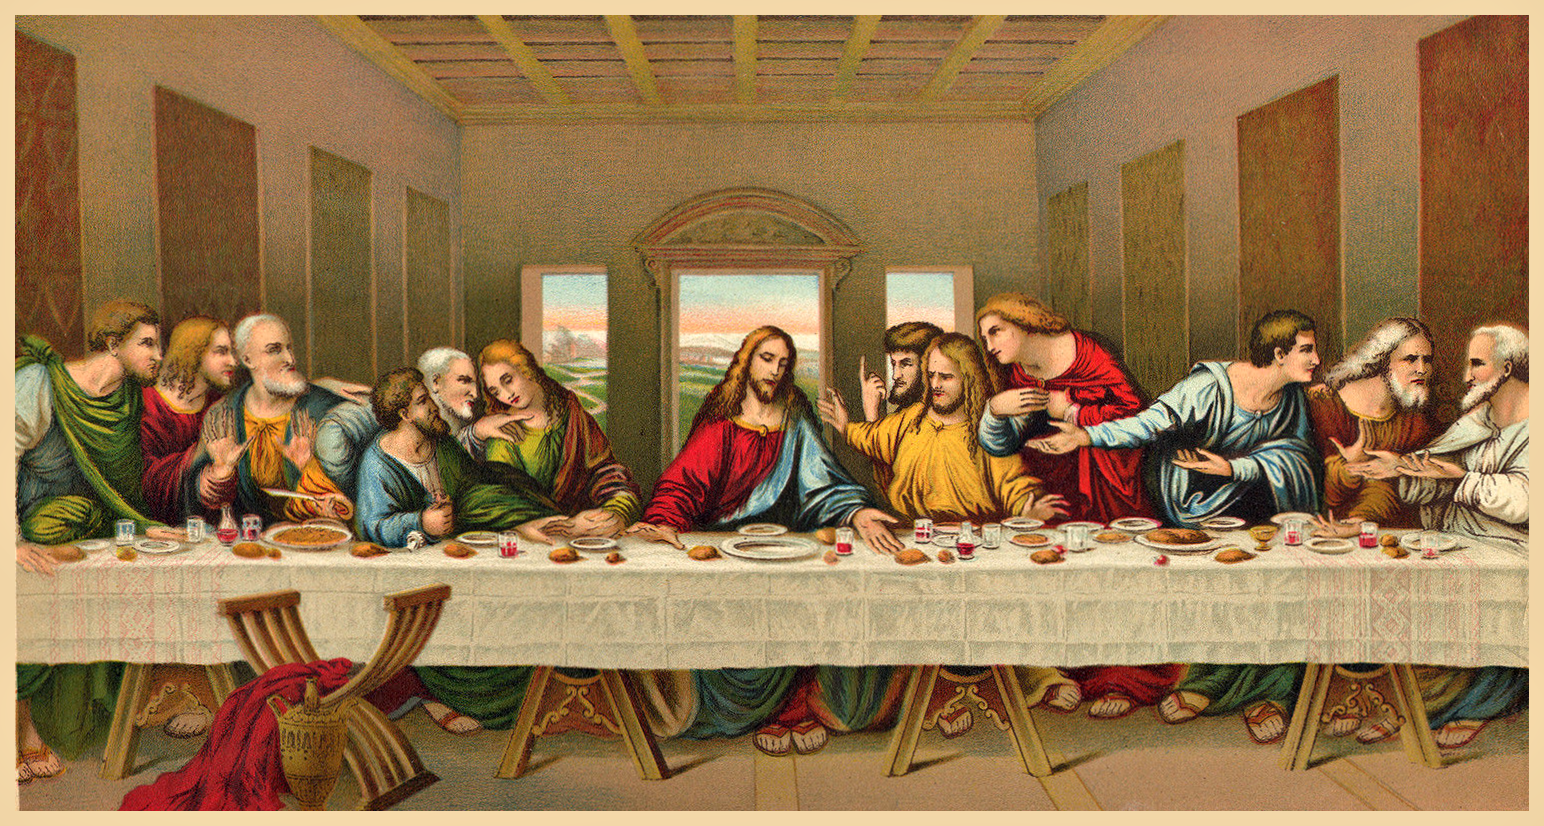 The Last Supper Image Download